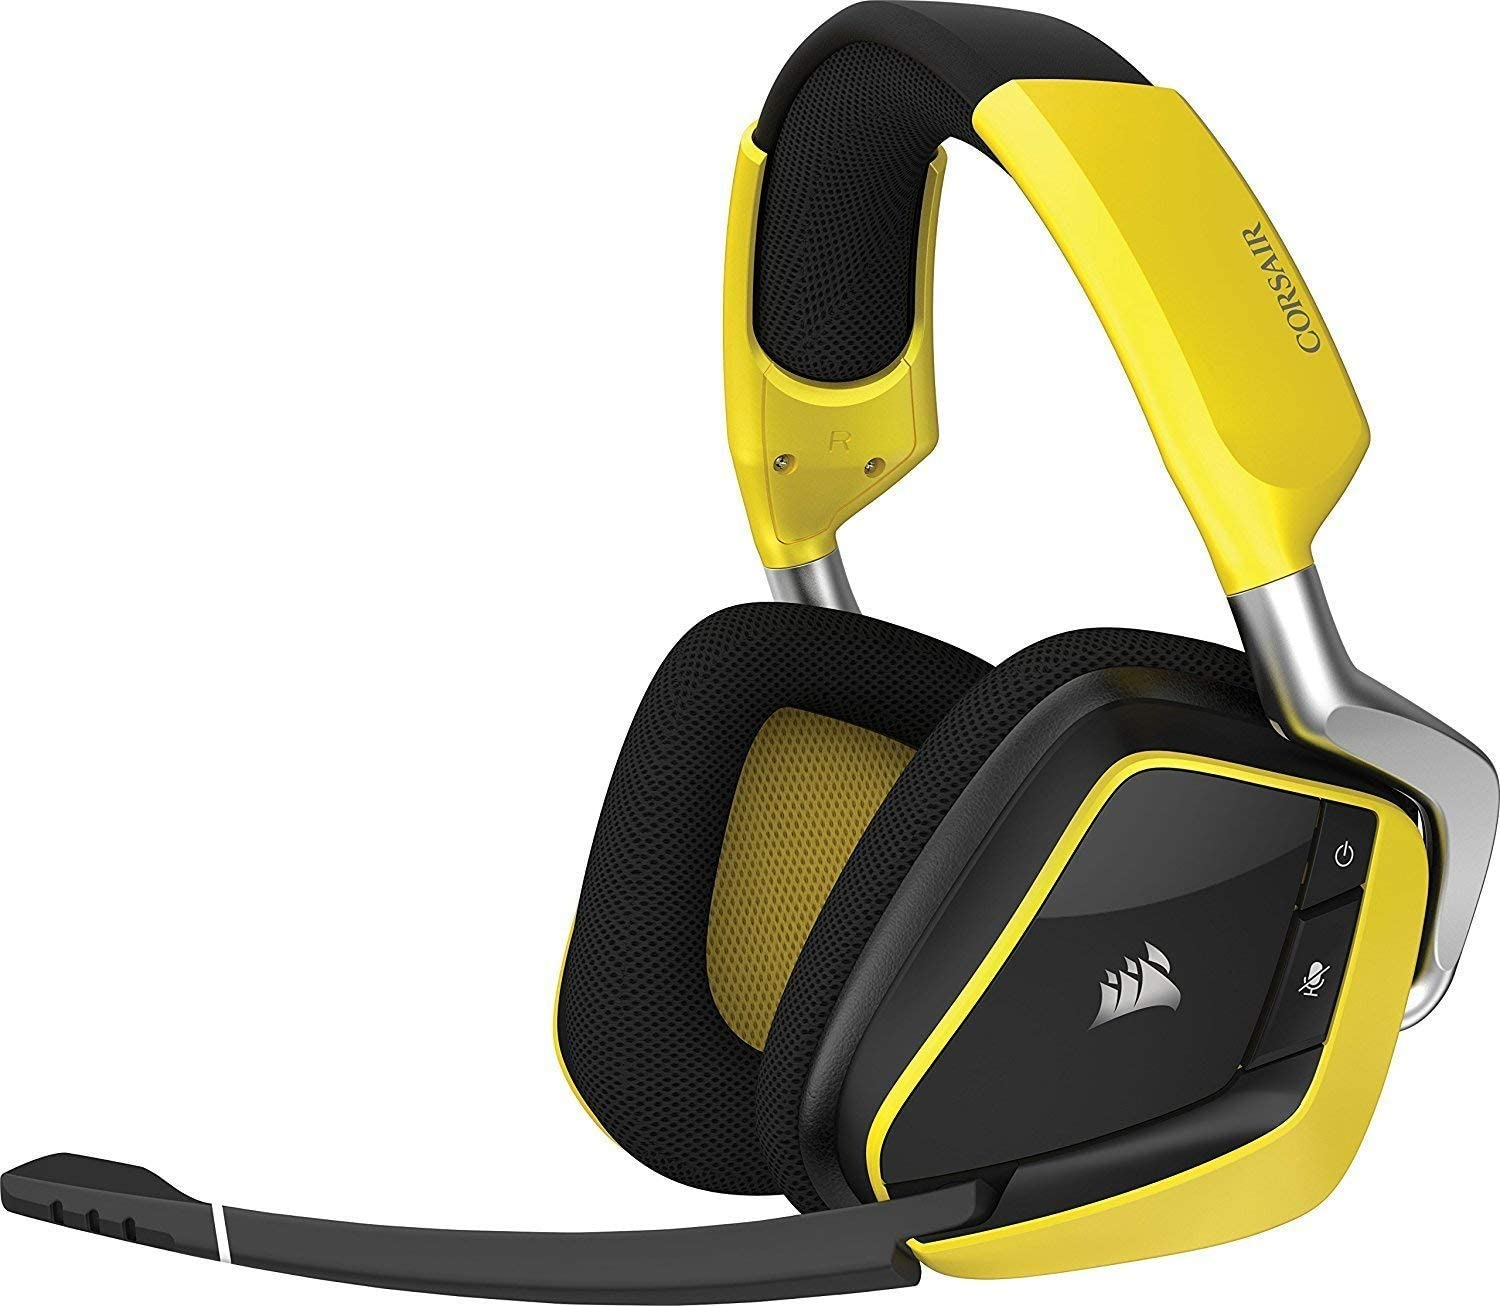 CORSAIR VOID PRO RGB SE Wireless Gaming Headset for PC (CA-9011150-NA) - Yellow